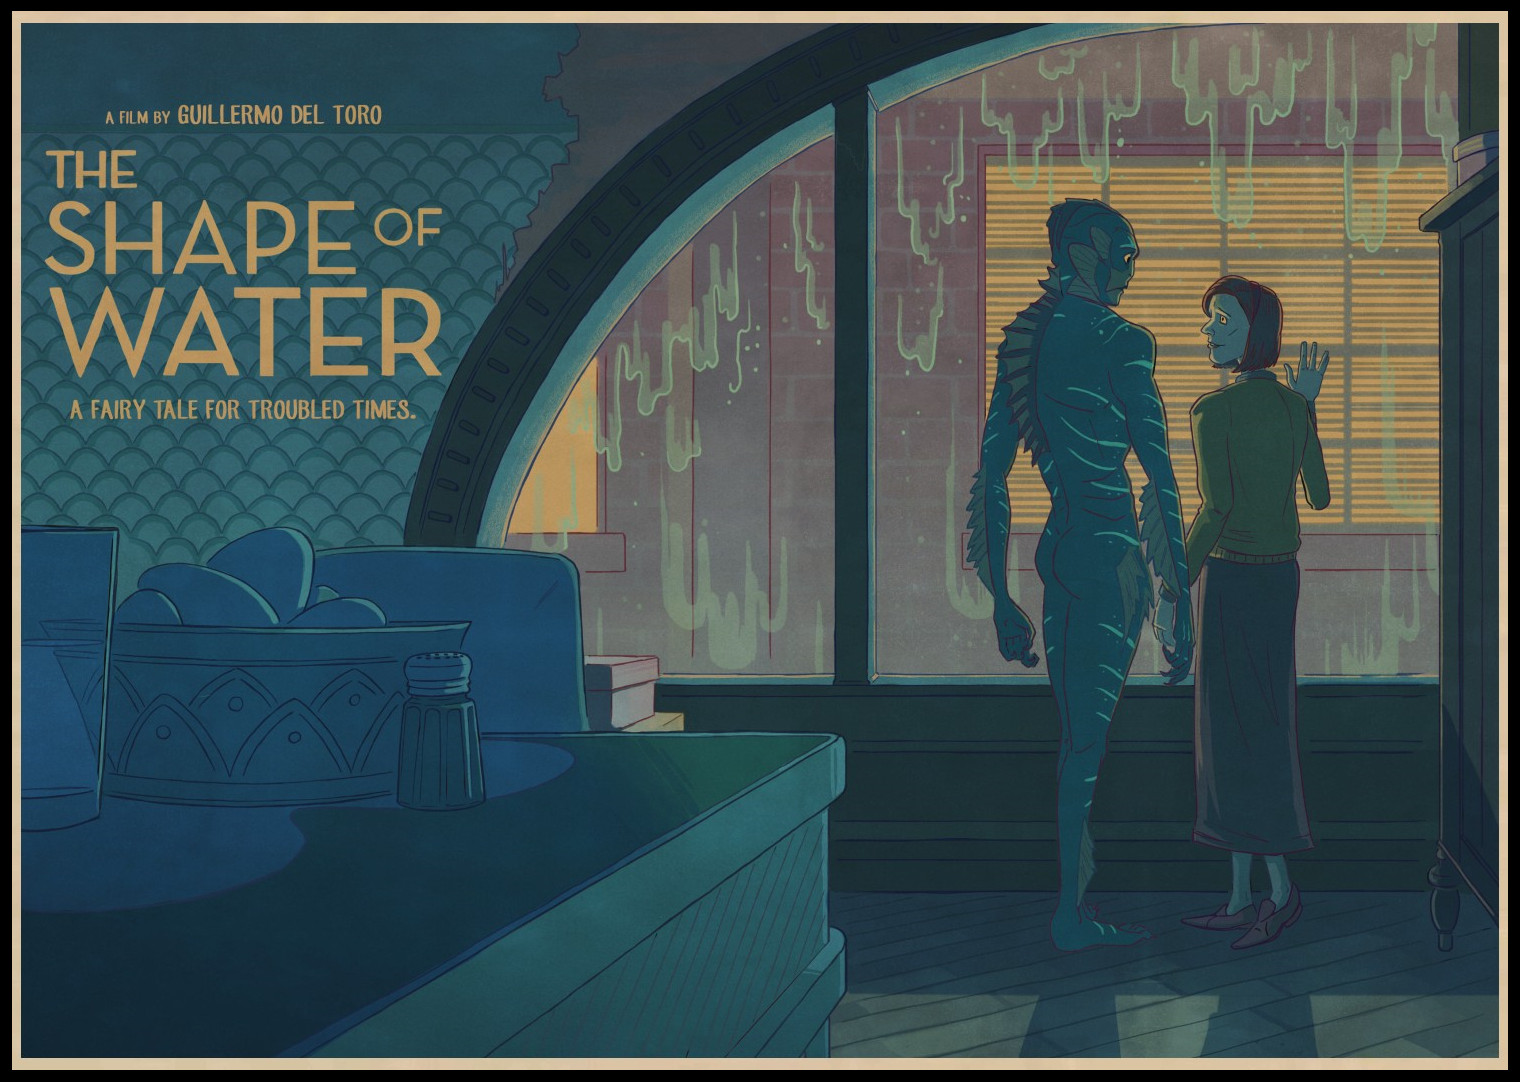 Buy Three To Send One The Shape Of Water Classic Film Wallpaper